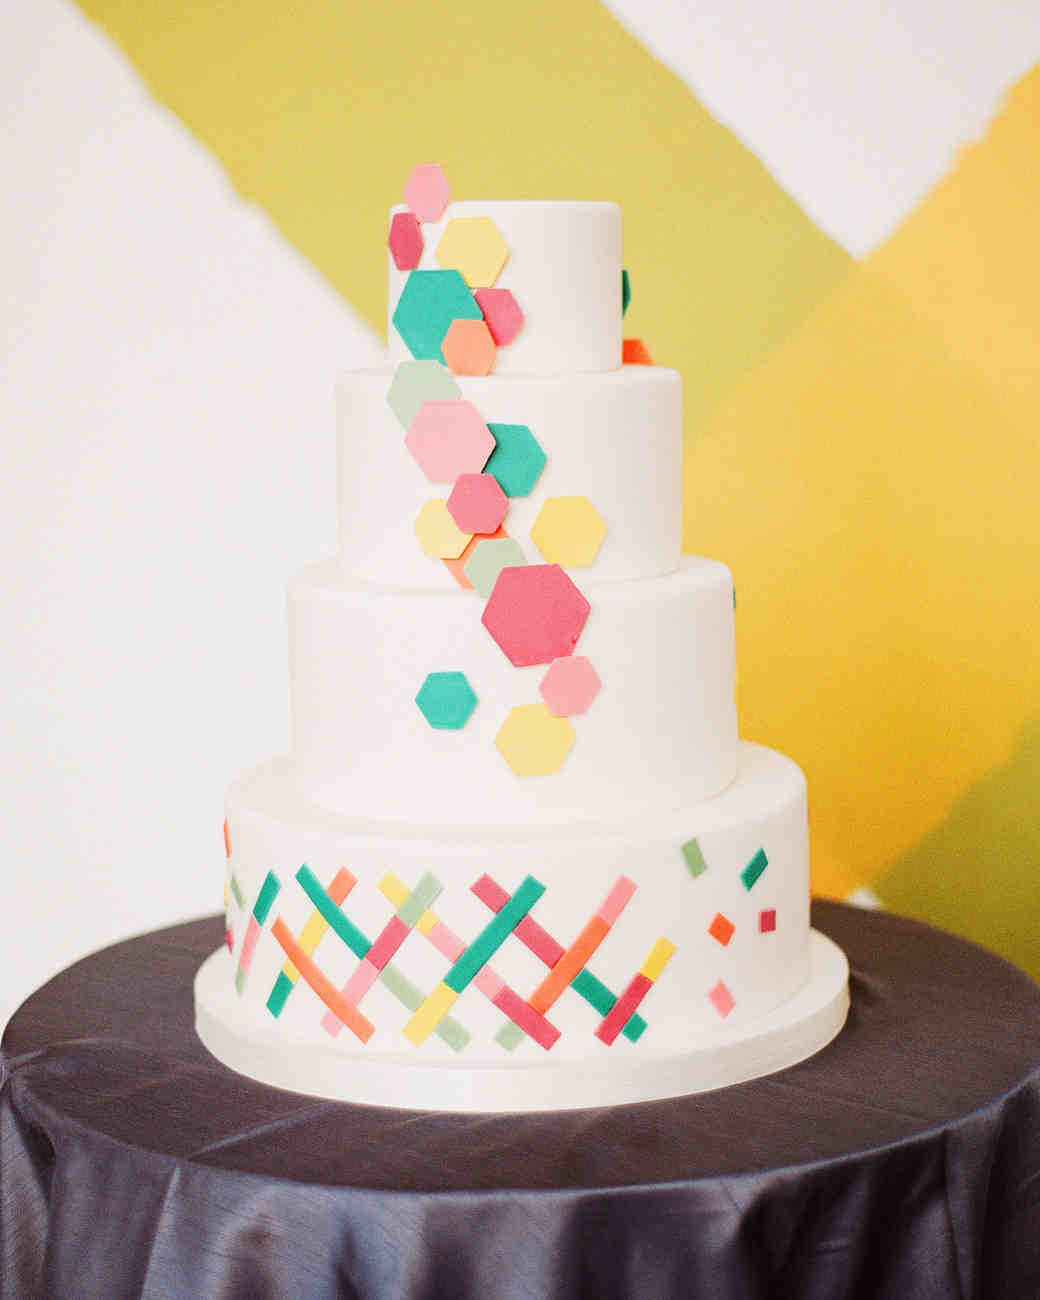 The 25 Best Wedding Cakes | Martha Stewart Weddings